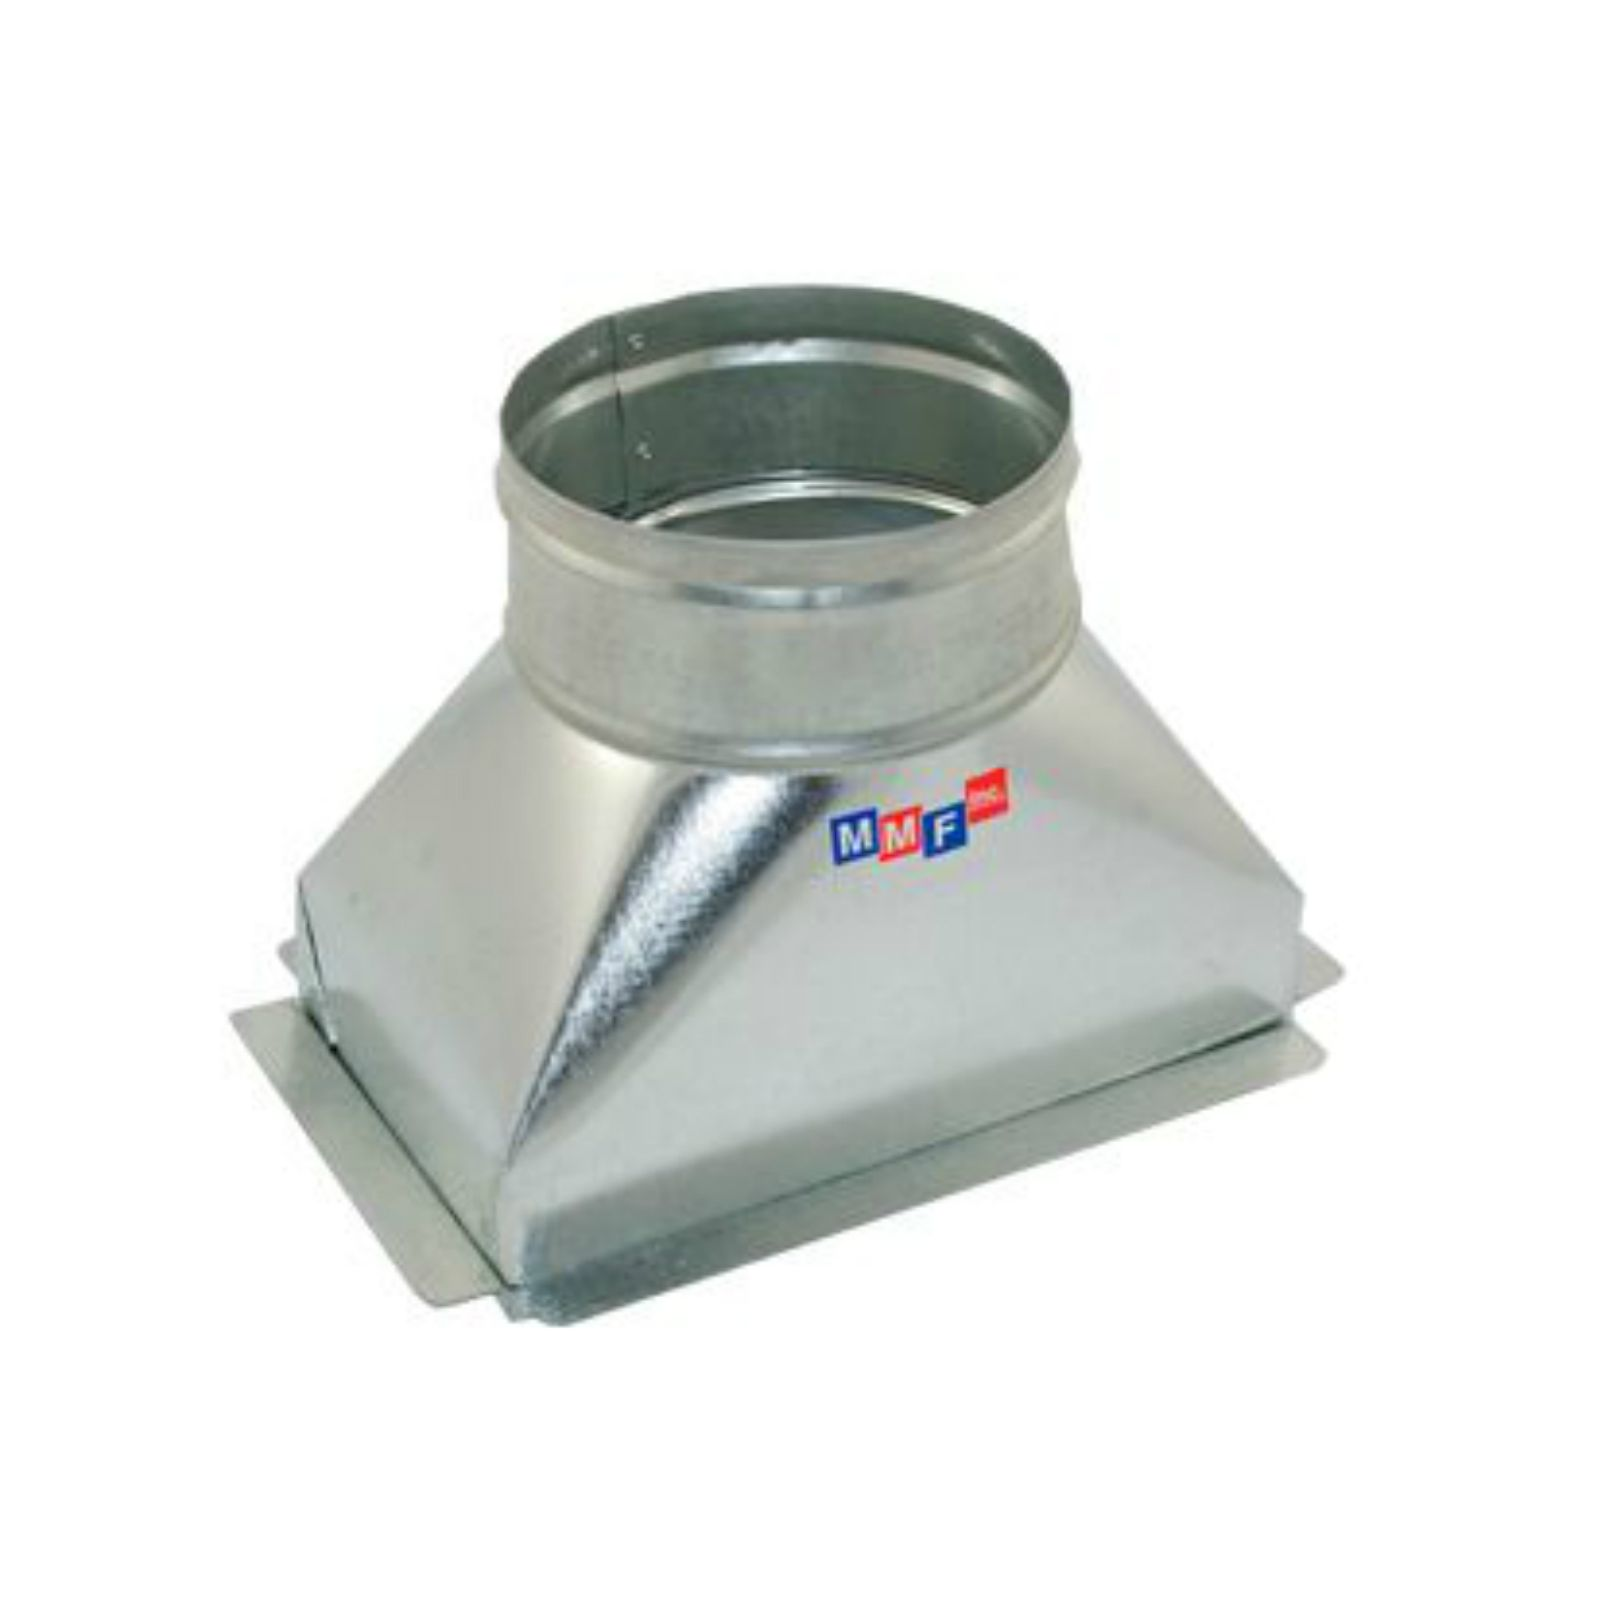 "Modular Metal BTSFI140608P - Sealed Floor Box - 26 Gauge - With Plaster Ground Flange 14"" X 06"" To 08"" Round"